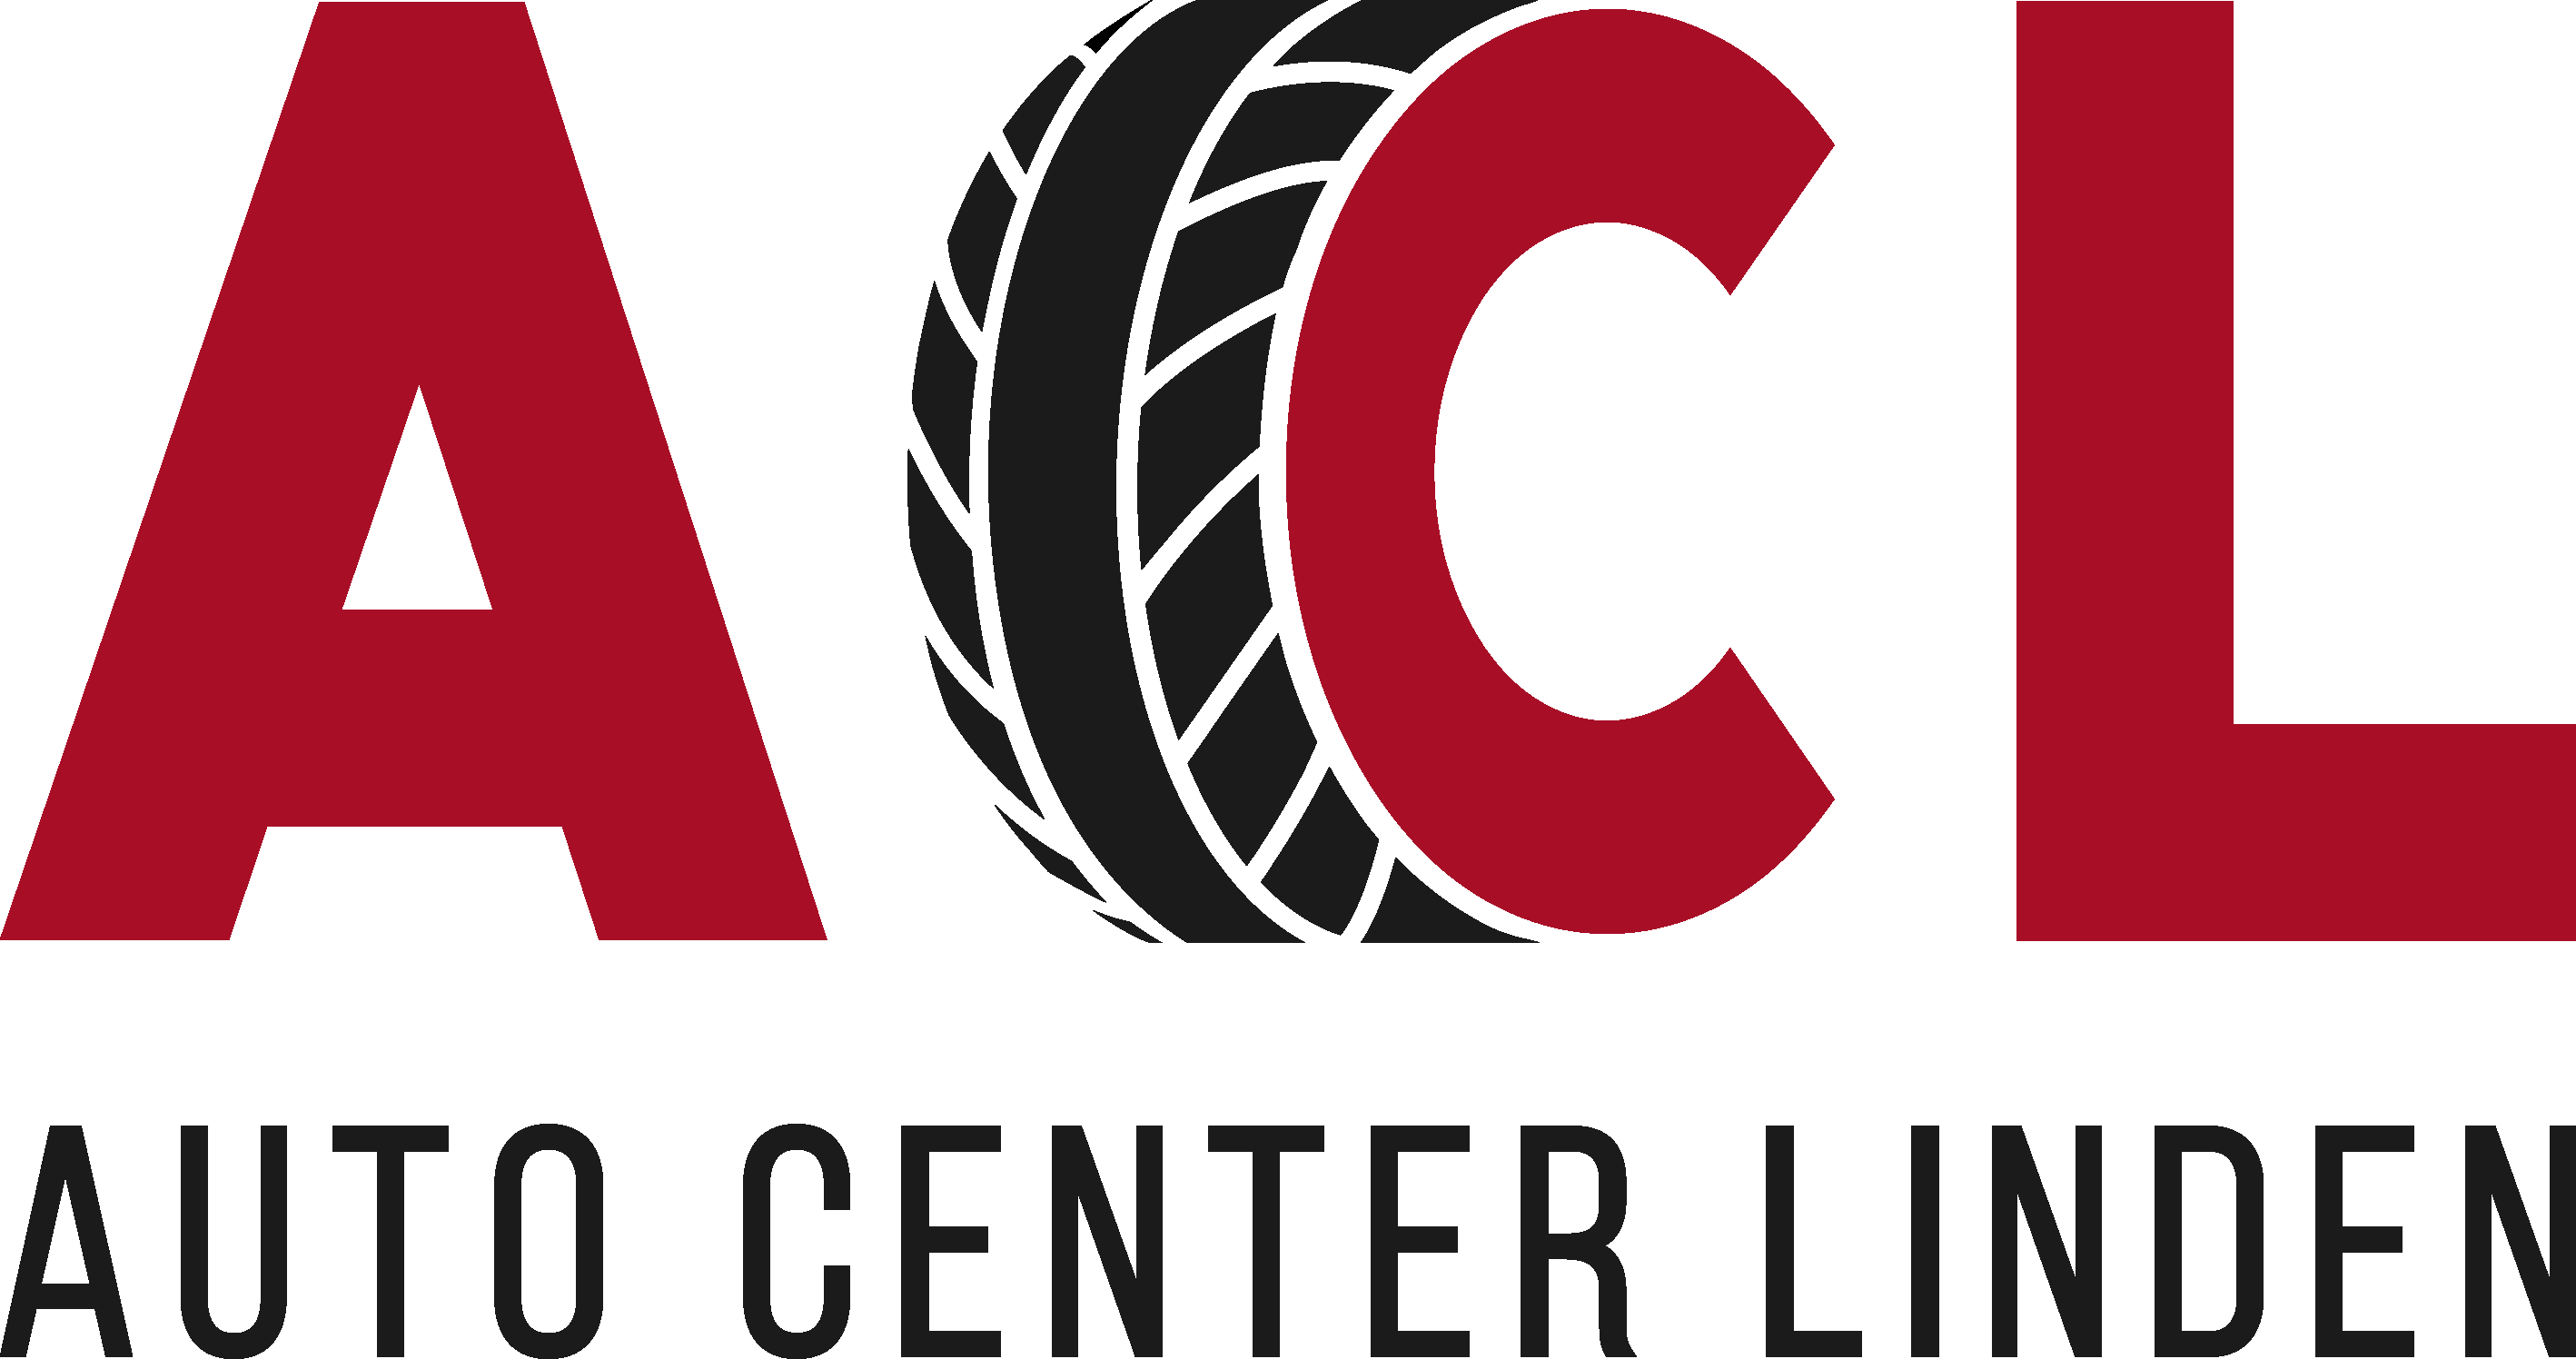 ACL Auto Center Linden GmbH